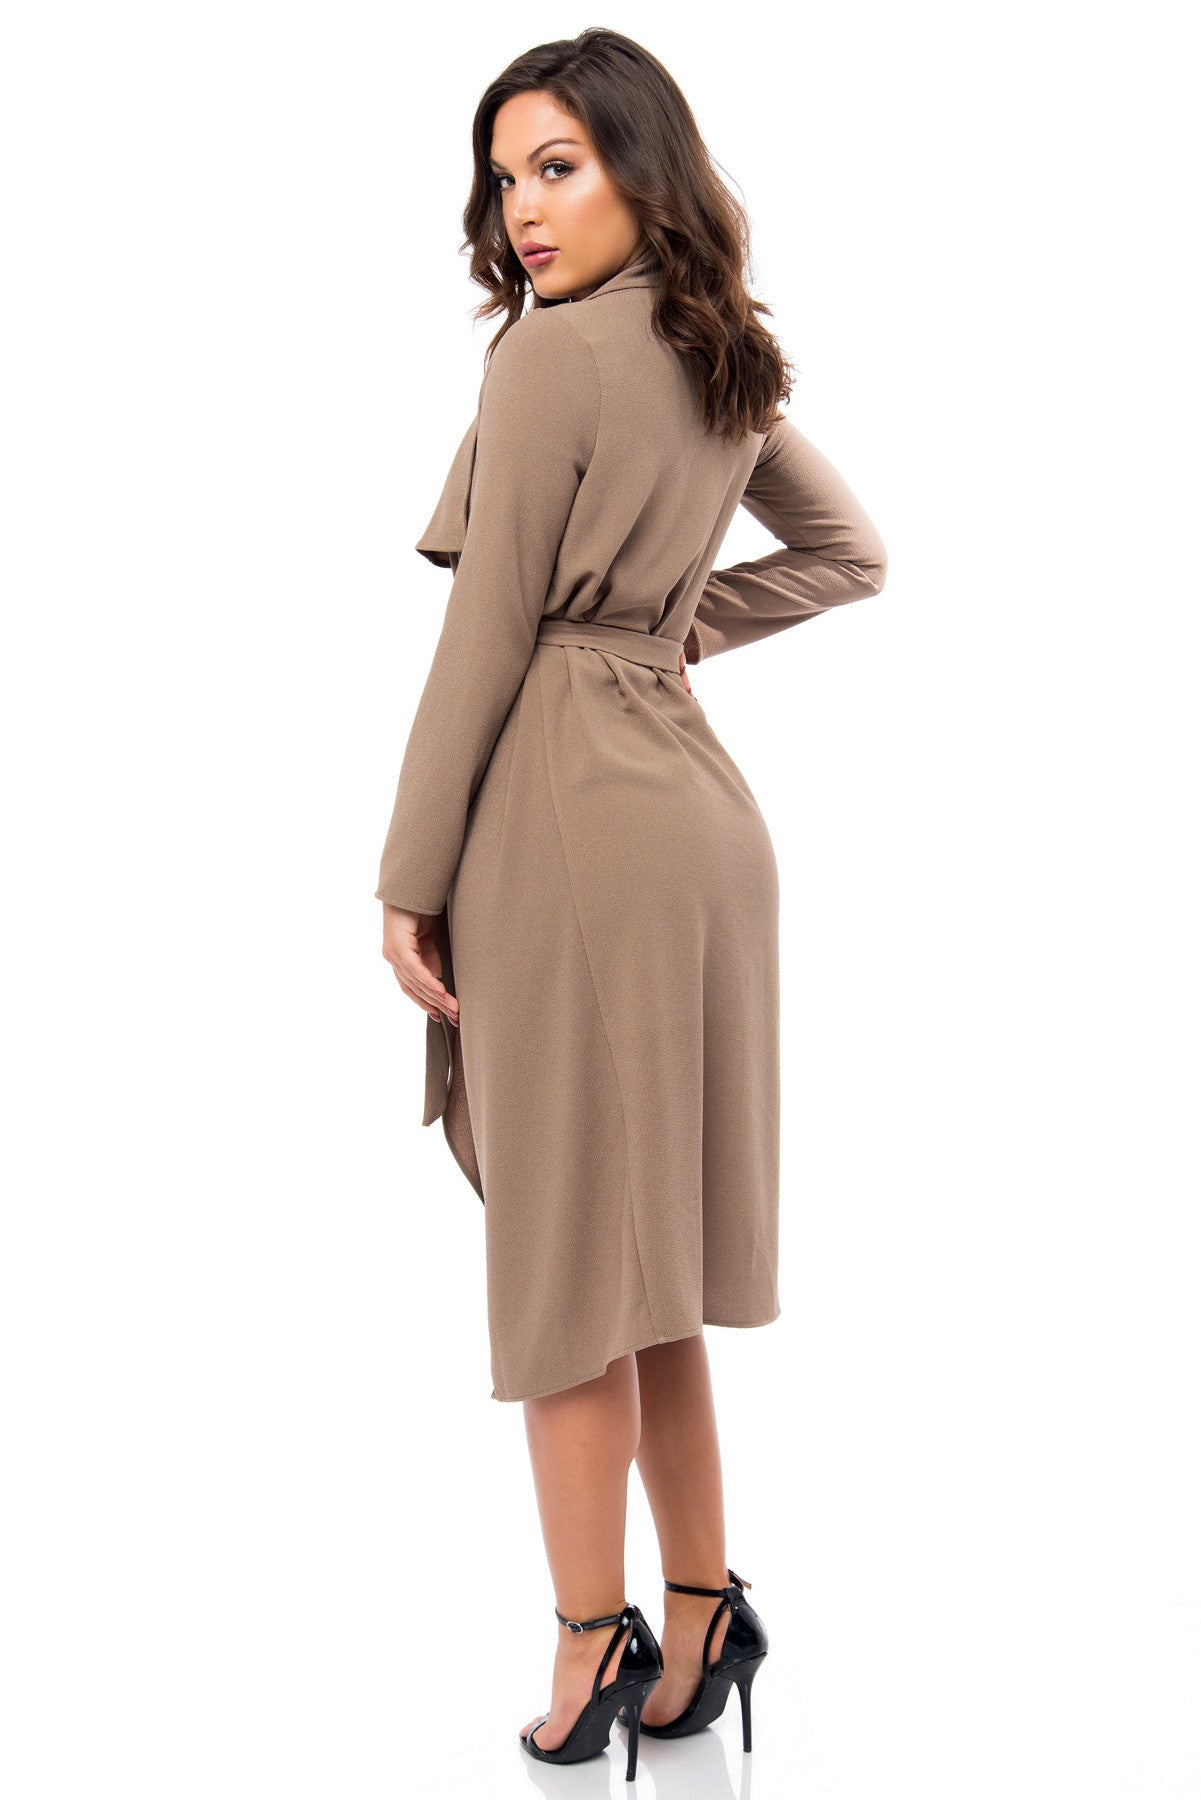 RESTOCK Walk With Me Taupe Duster - Fashion Effect Store  - 3